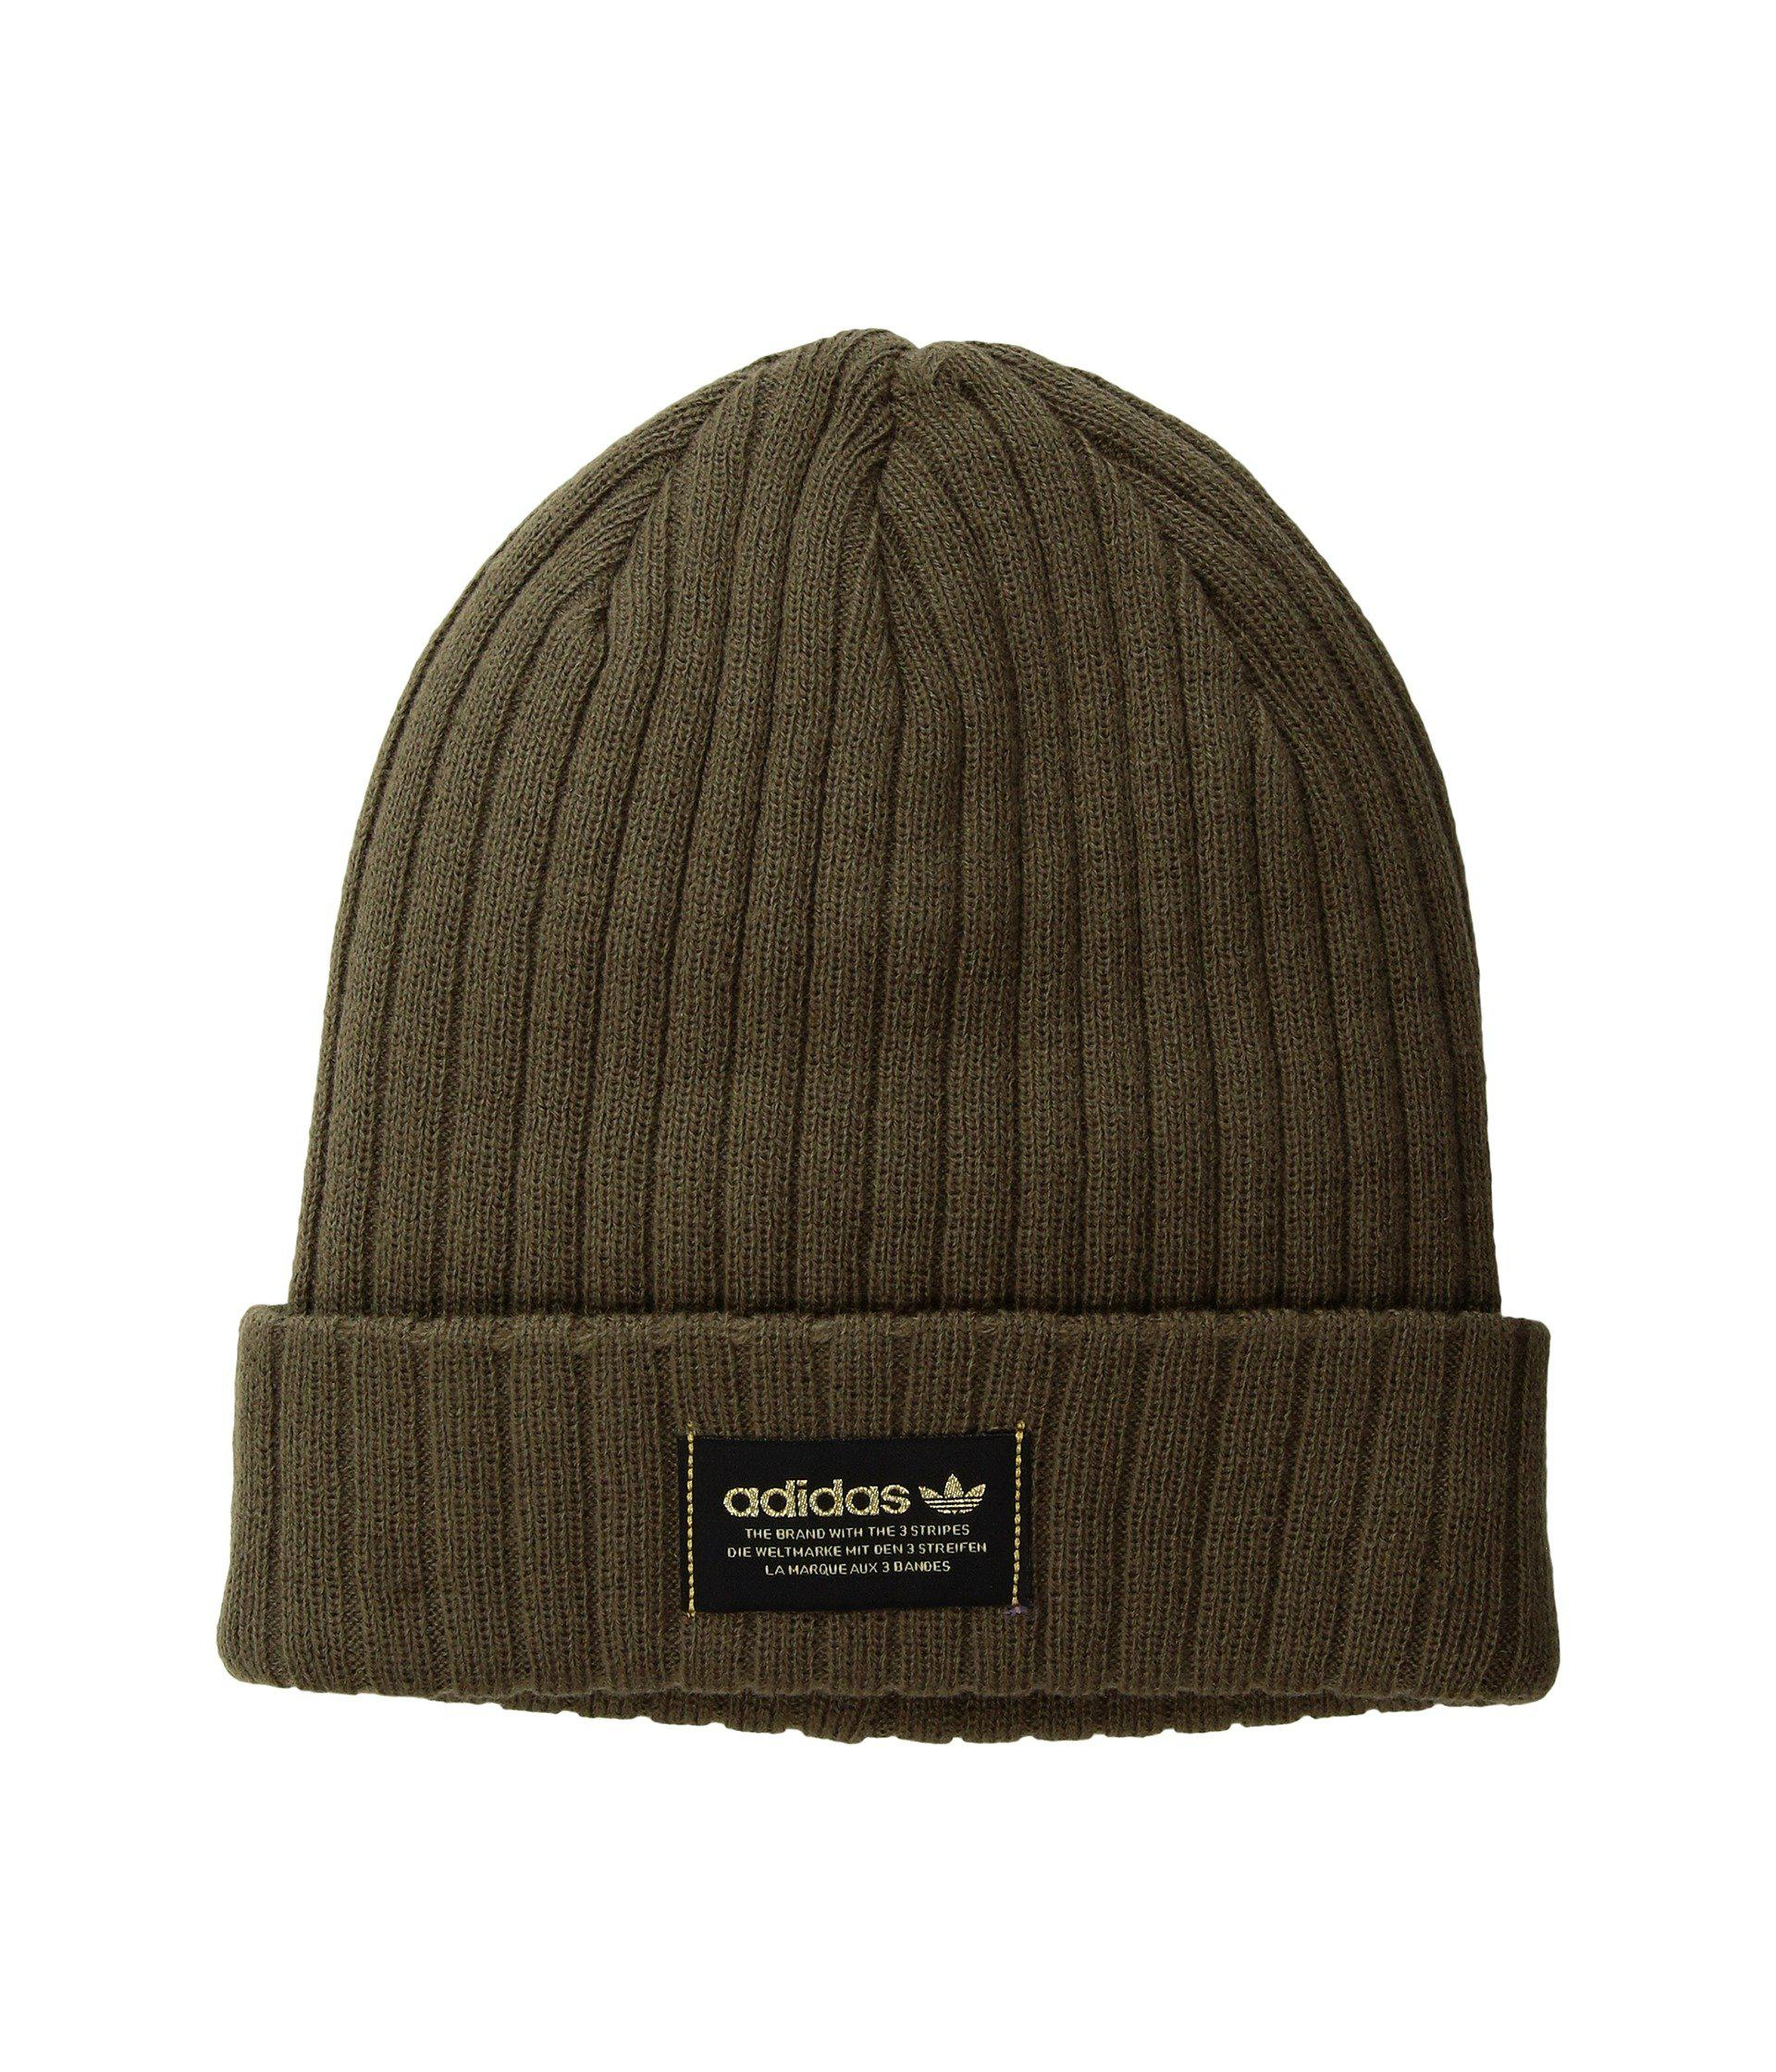 2fbefd08bcf99 ... cheap lyst adidas originals originals wide rib knit beanie in green for  men 38bd7 c5c90 ...